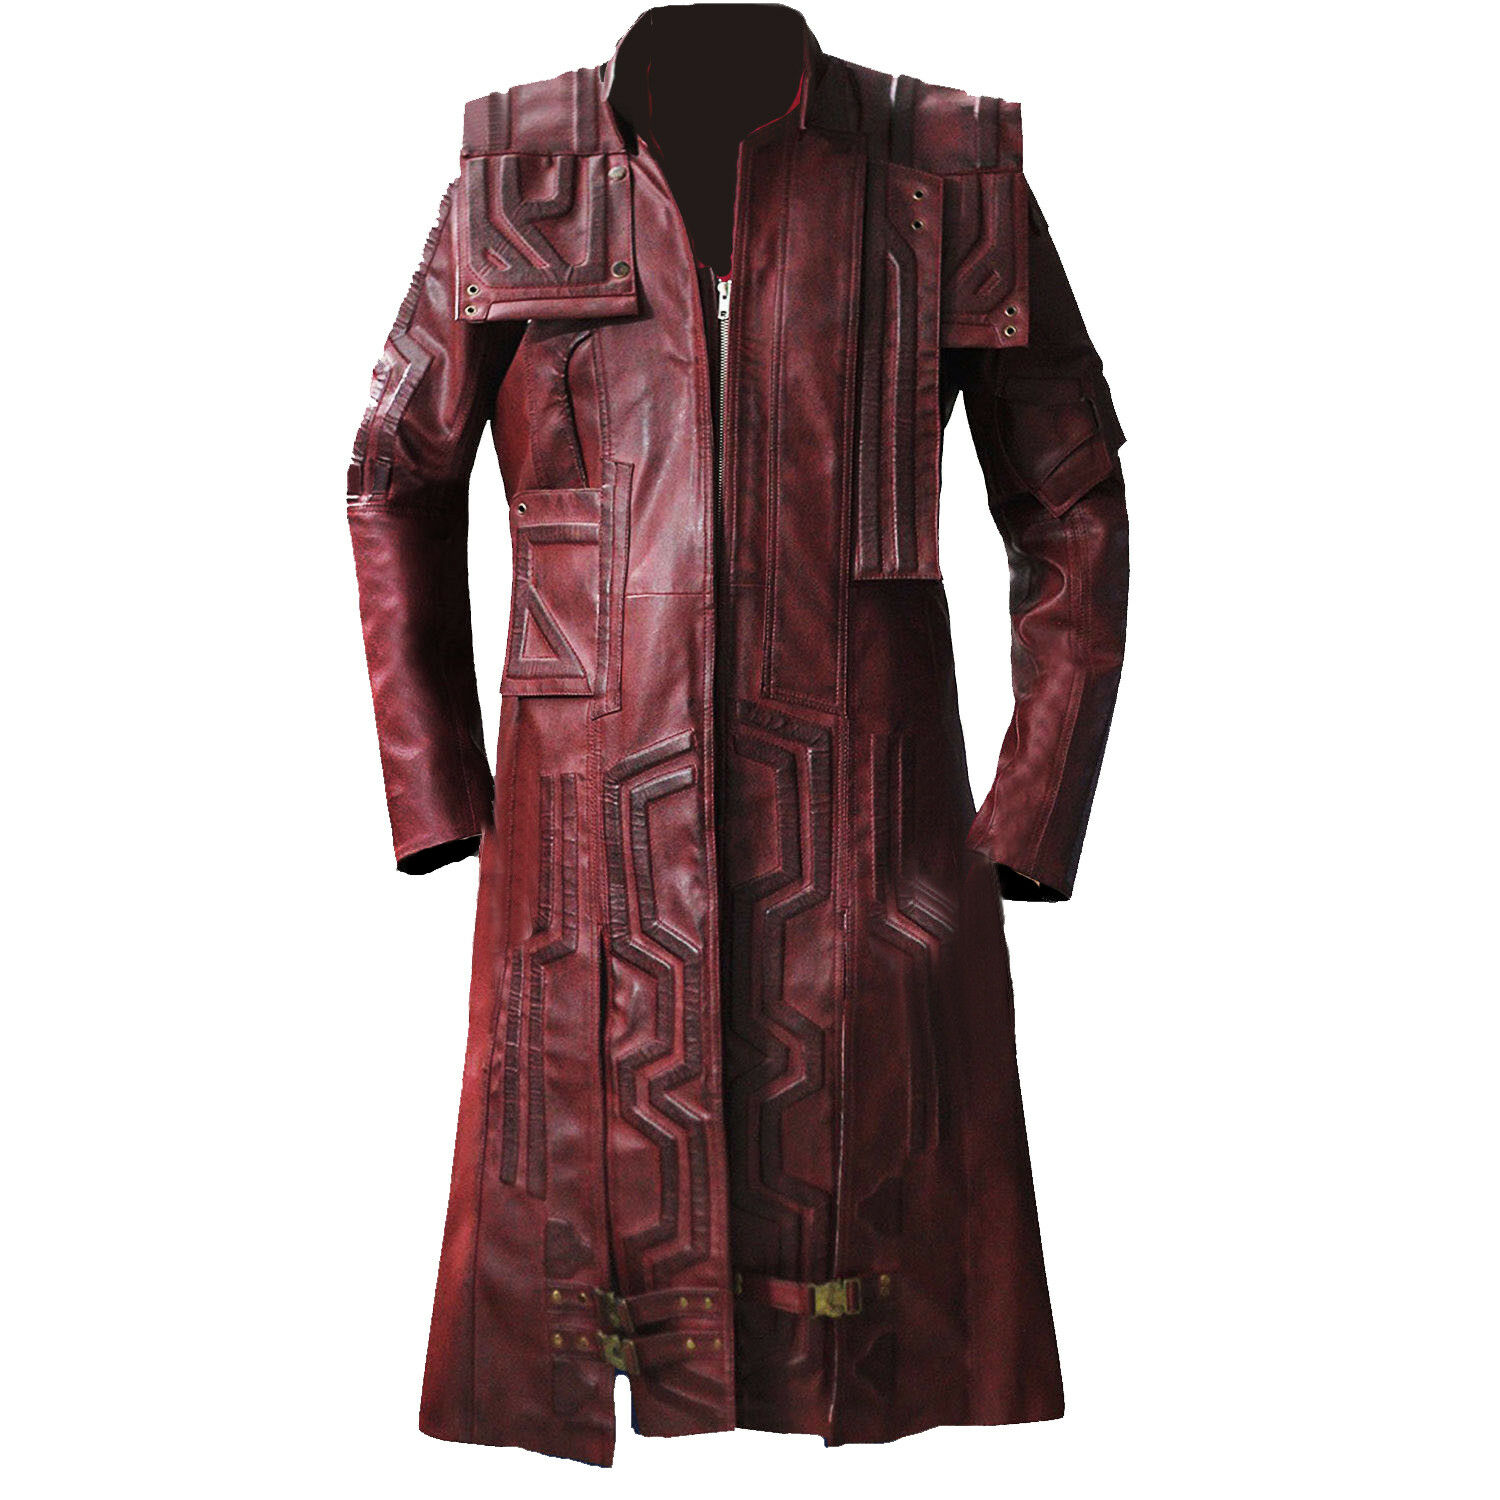 STAR LORD GUARDIAN OF GALAXY LONG TRENCH REAL LEATHER COAT CHRIS PRATT COSTUME